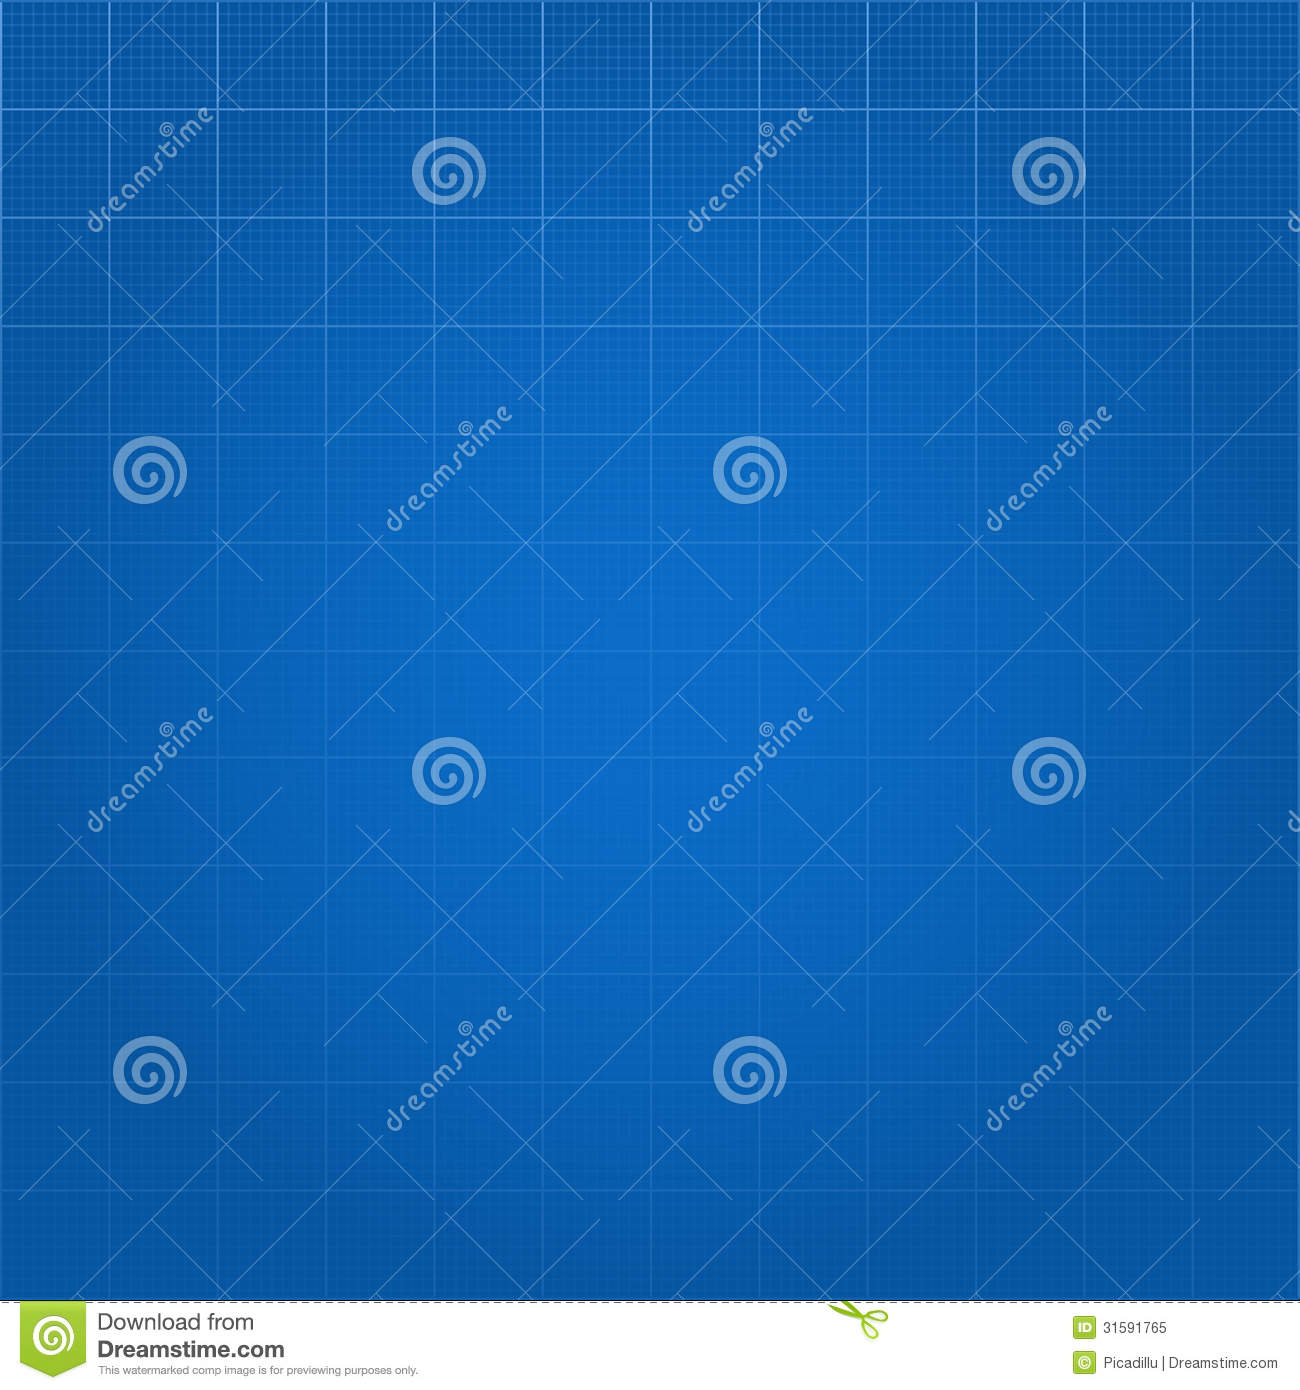 word document graph paper background